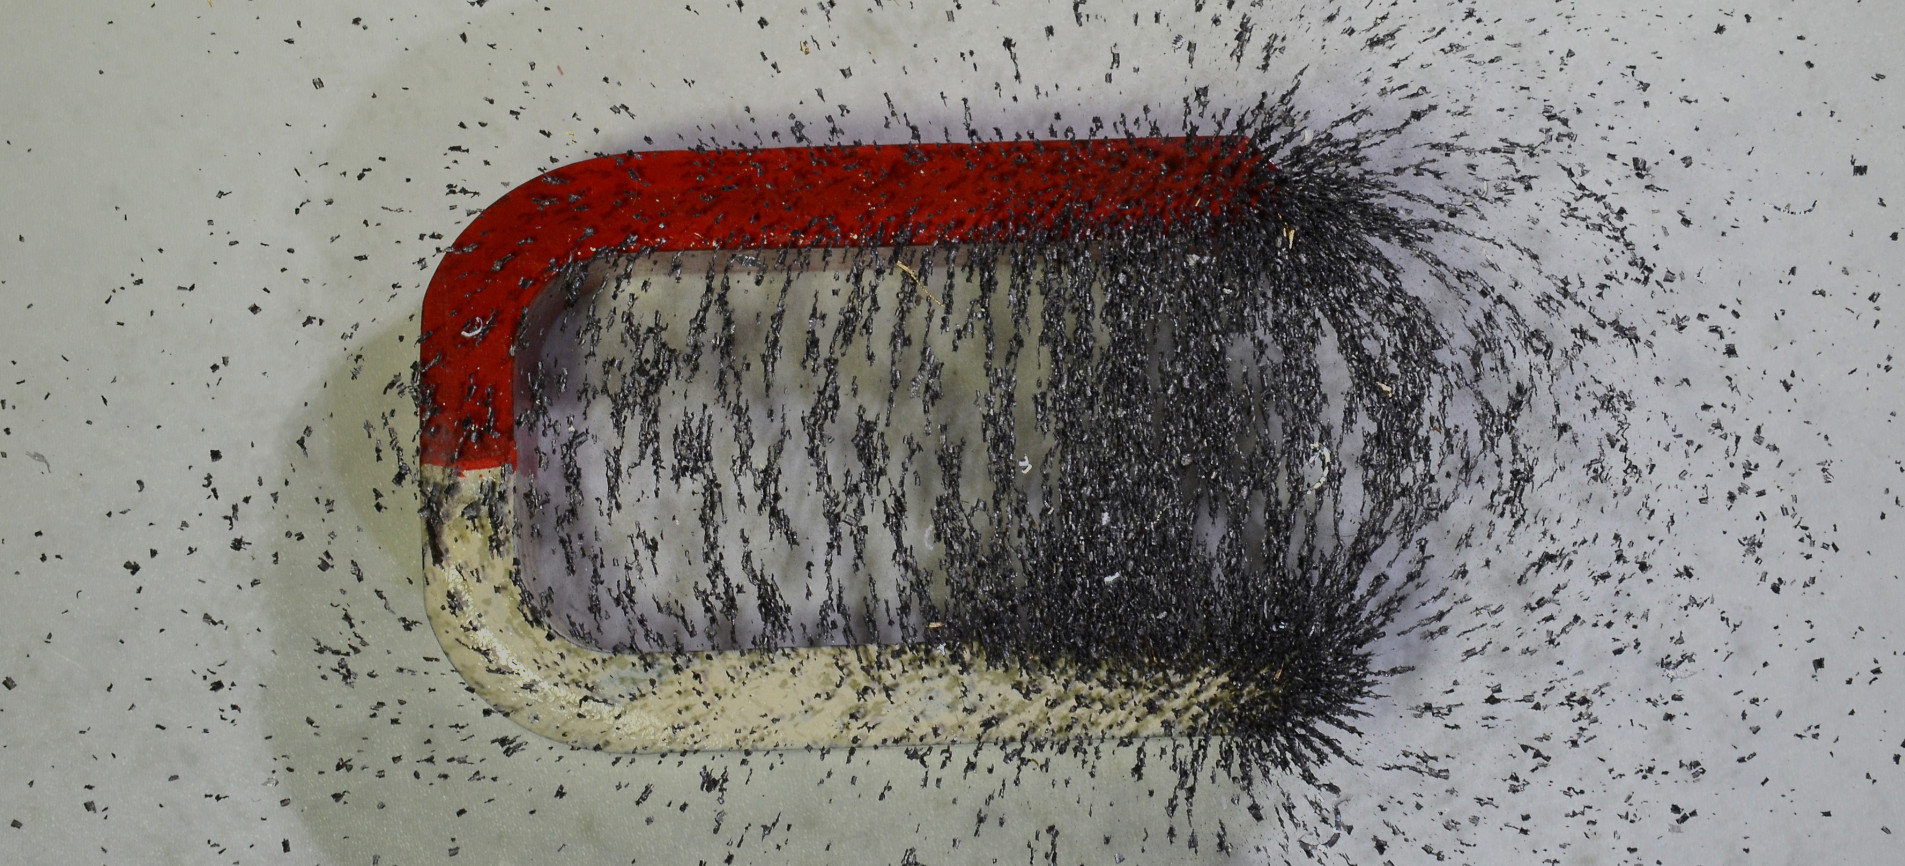 Can Magnets Lose Their Magnetism?